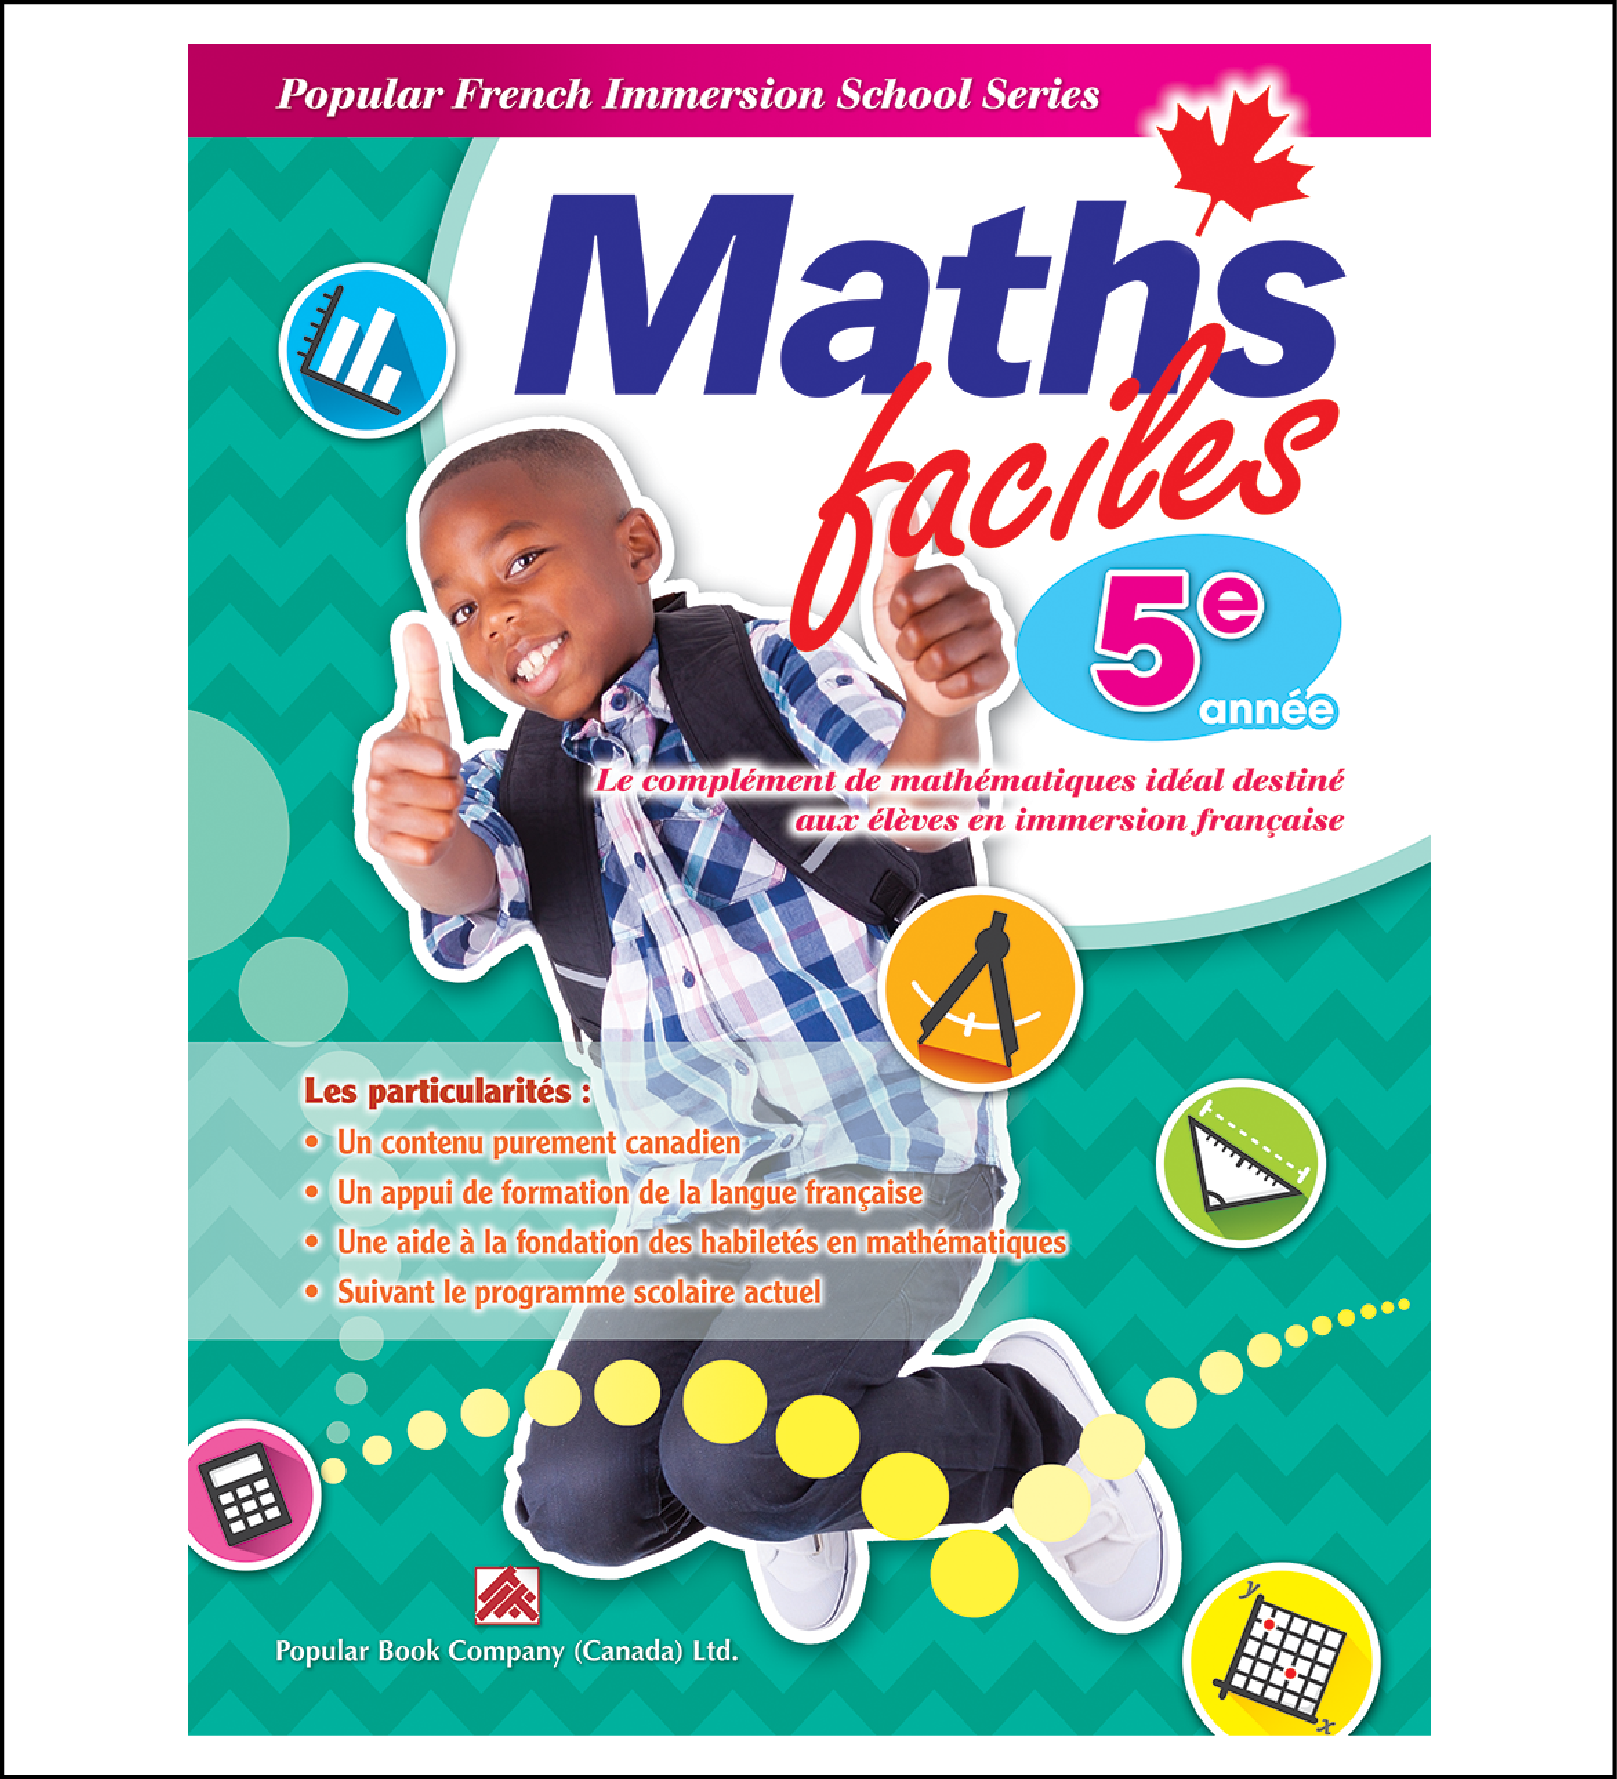 Canadian Curriculum Workbook for French Immersion School Maths faciles grade 5